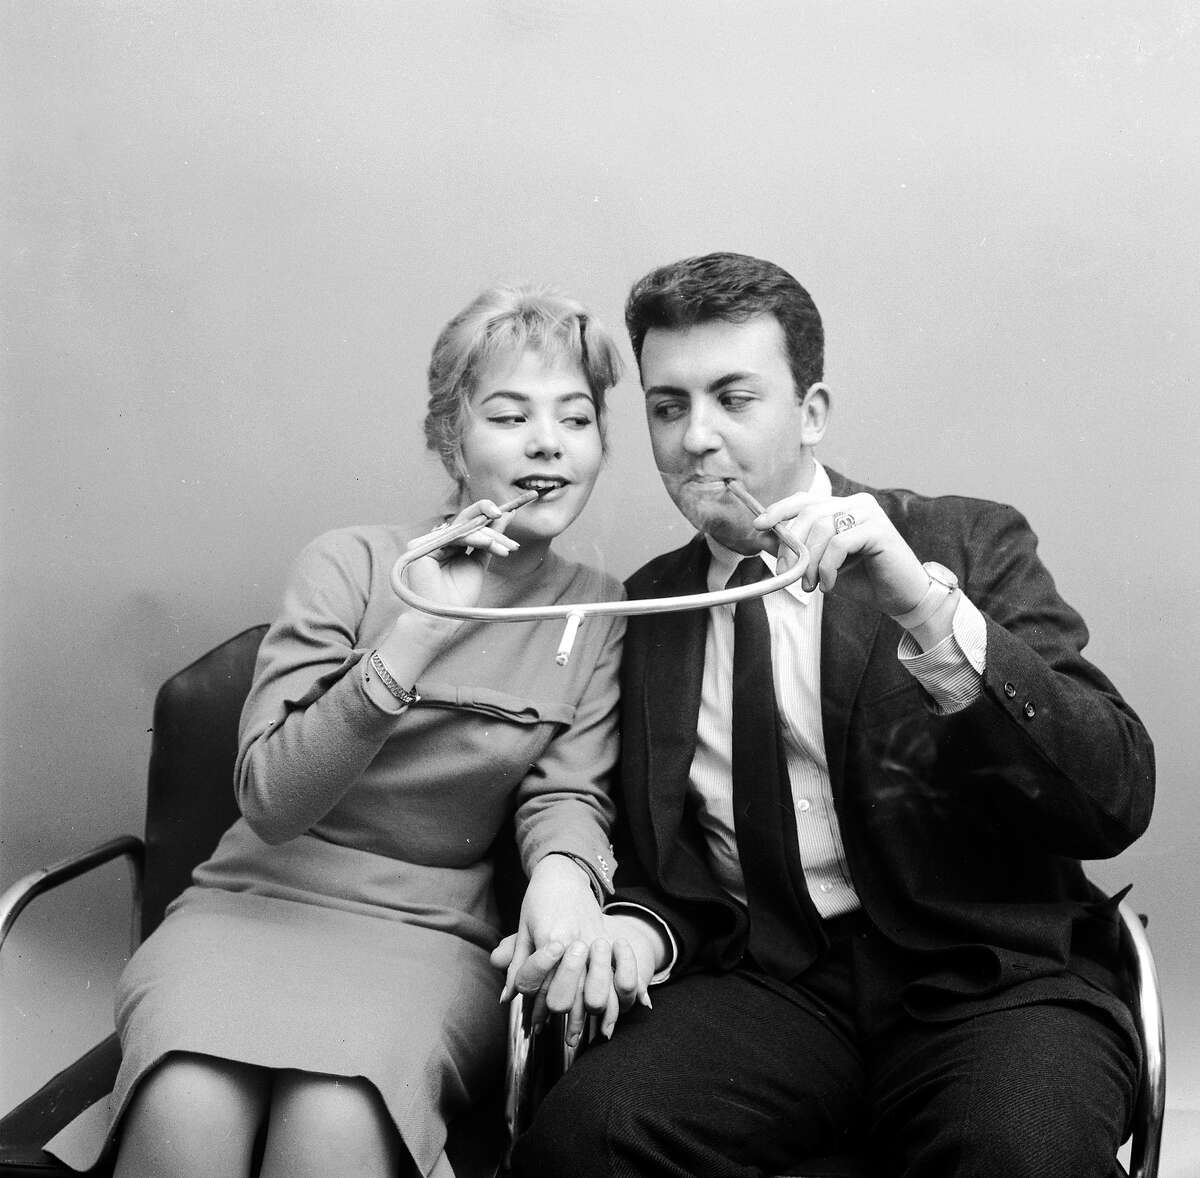 Cigarette holder made for two, 1955 Half the nicotine, twice the intimacy. But come on.